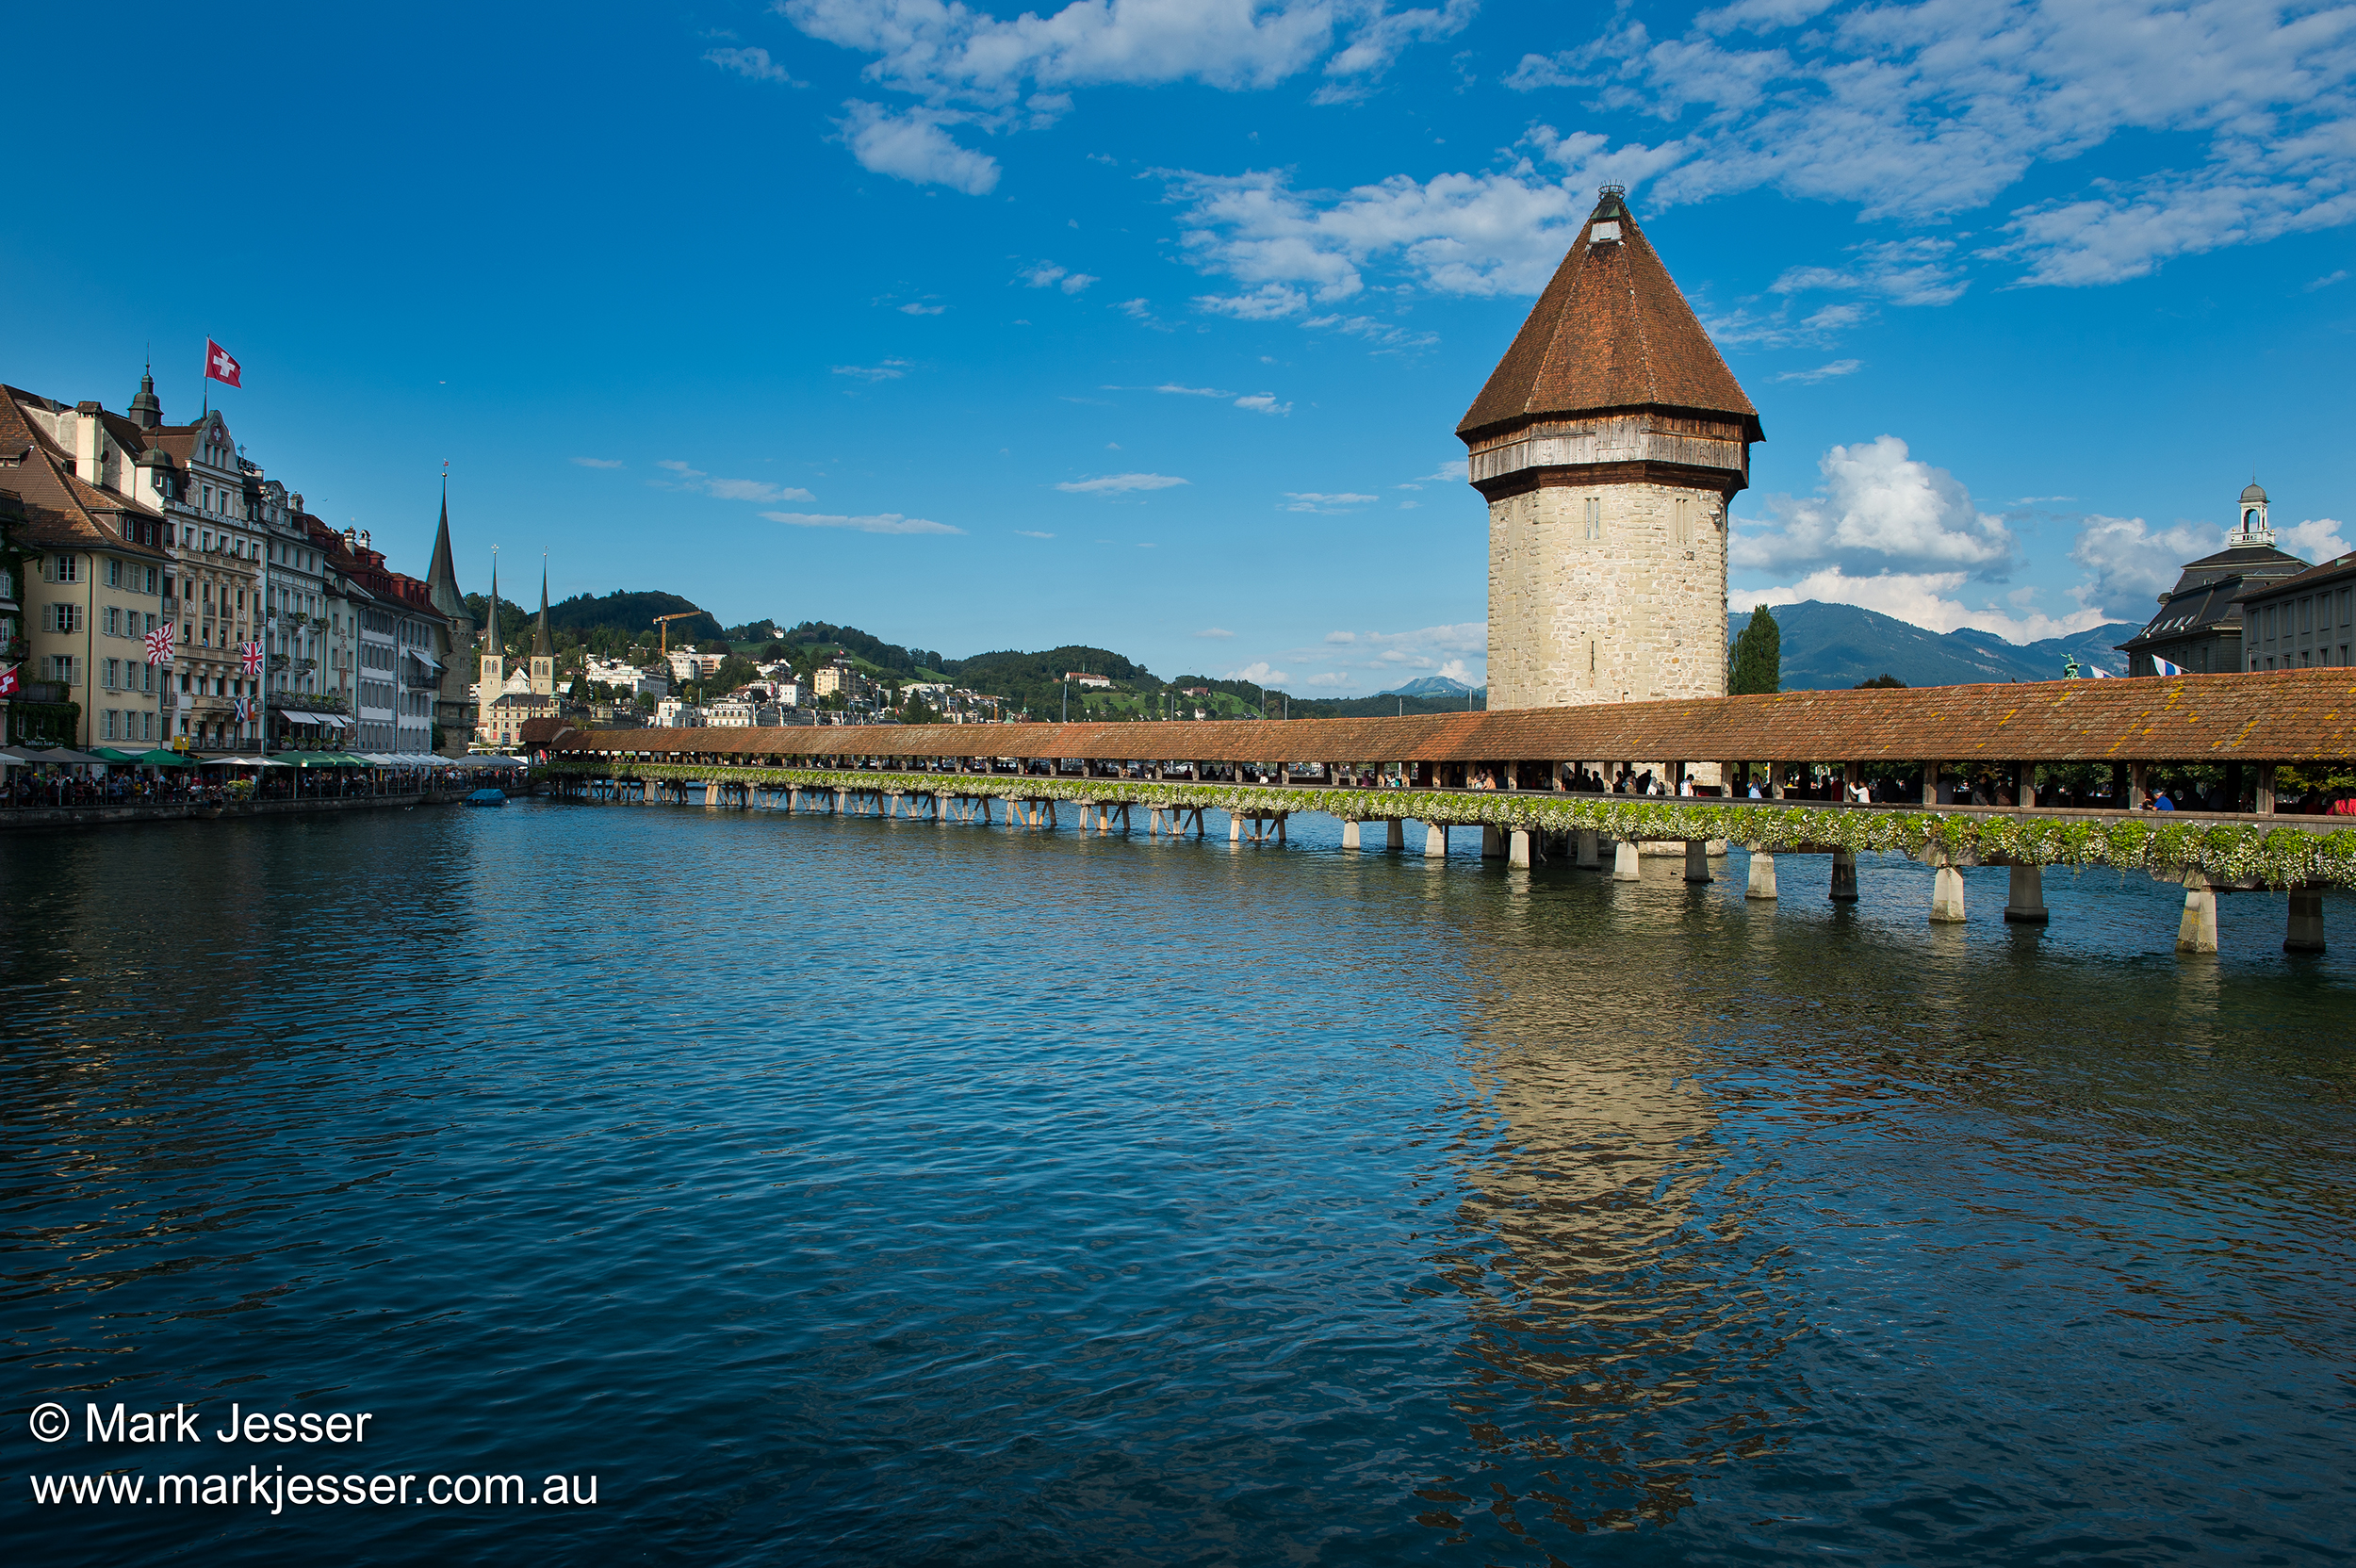 (Photo Mark Jesser) Lucerne, Switzerland. Kapellbrücke, Bridge.